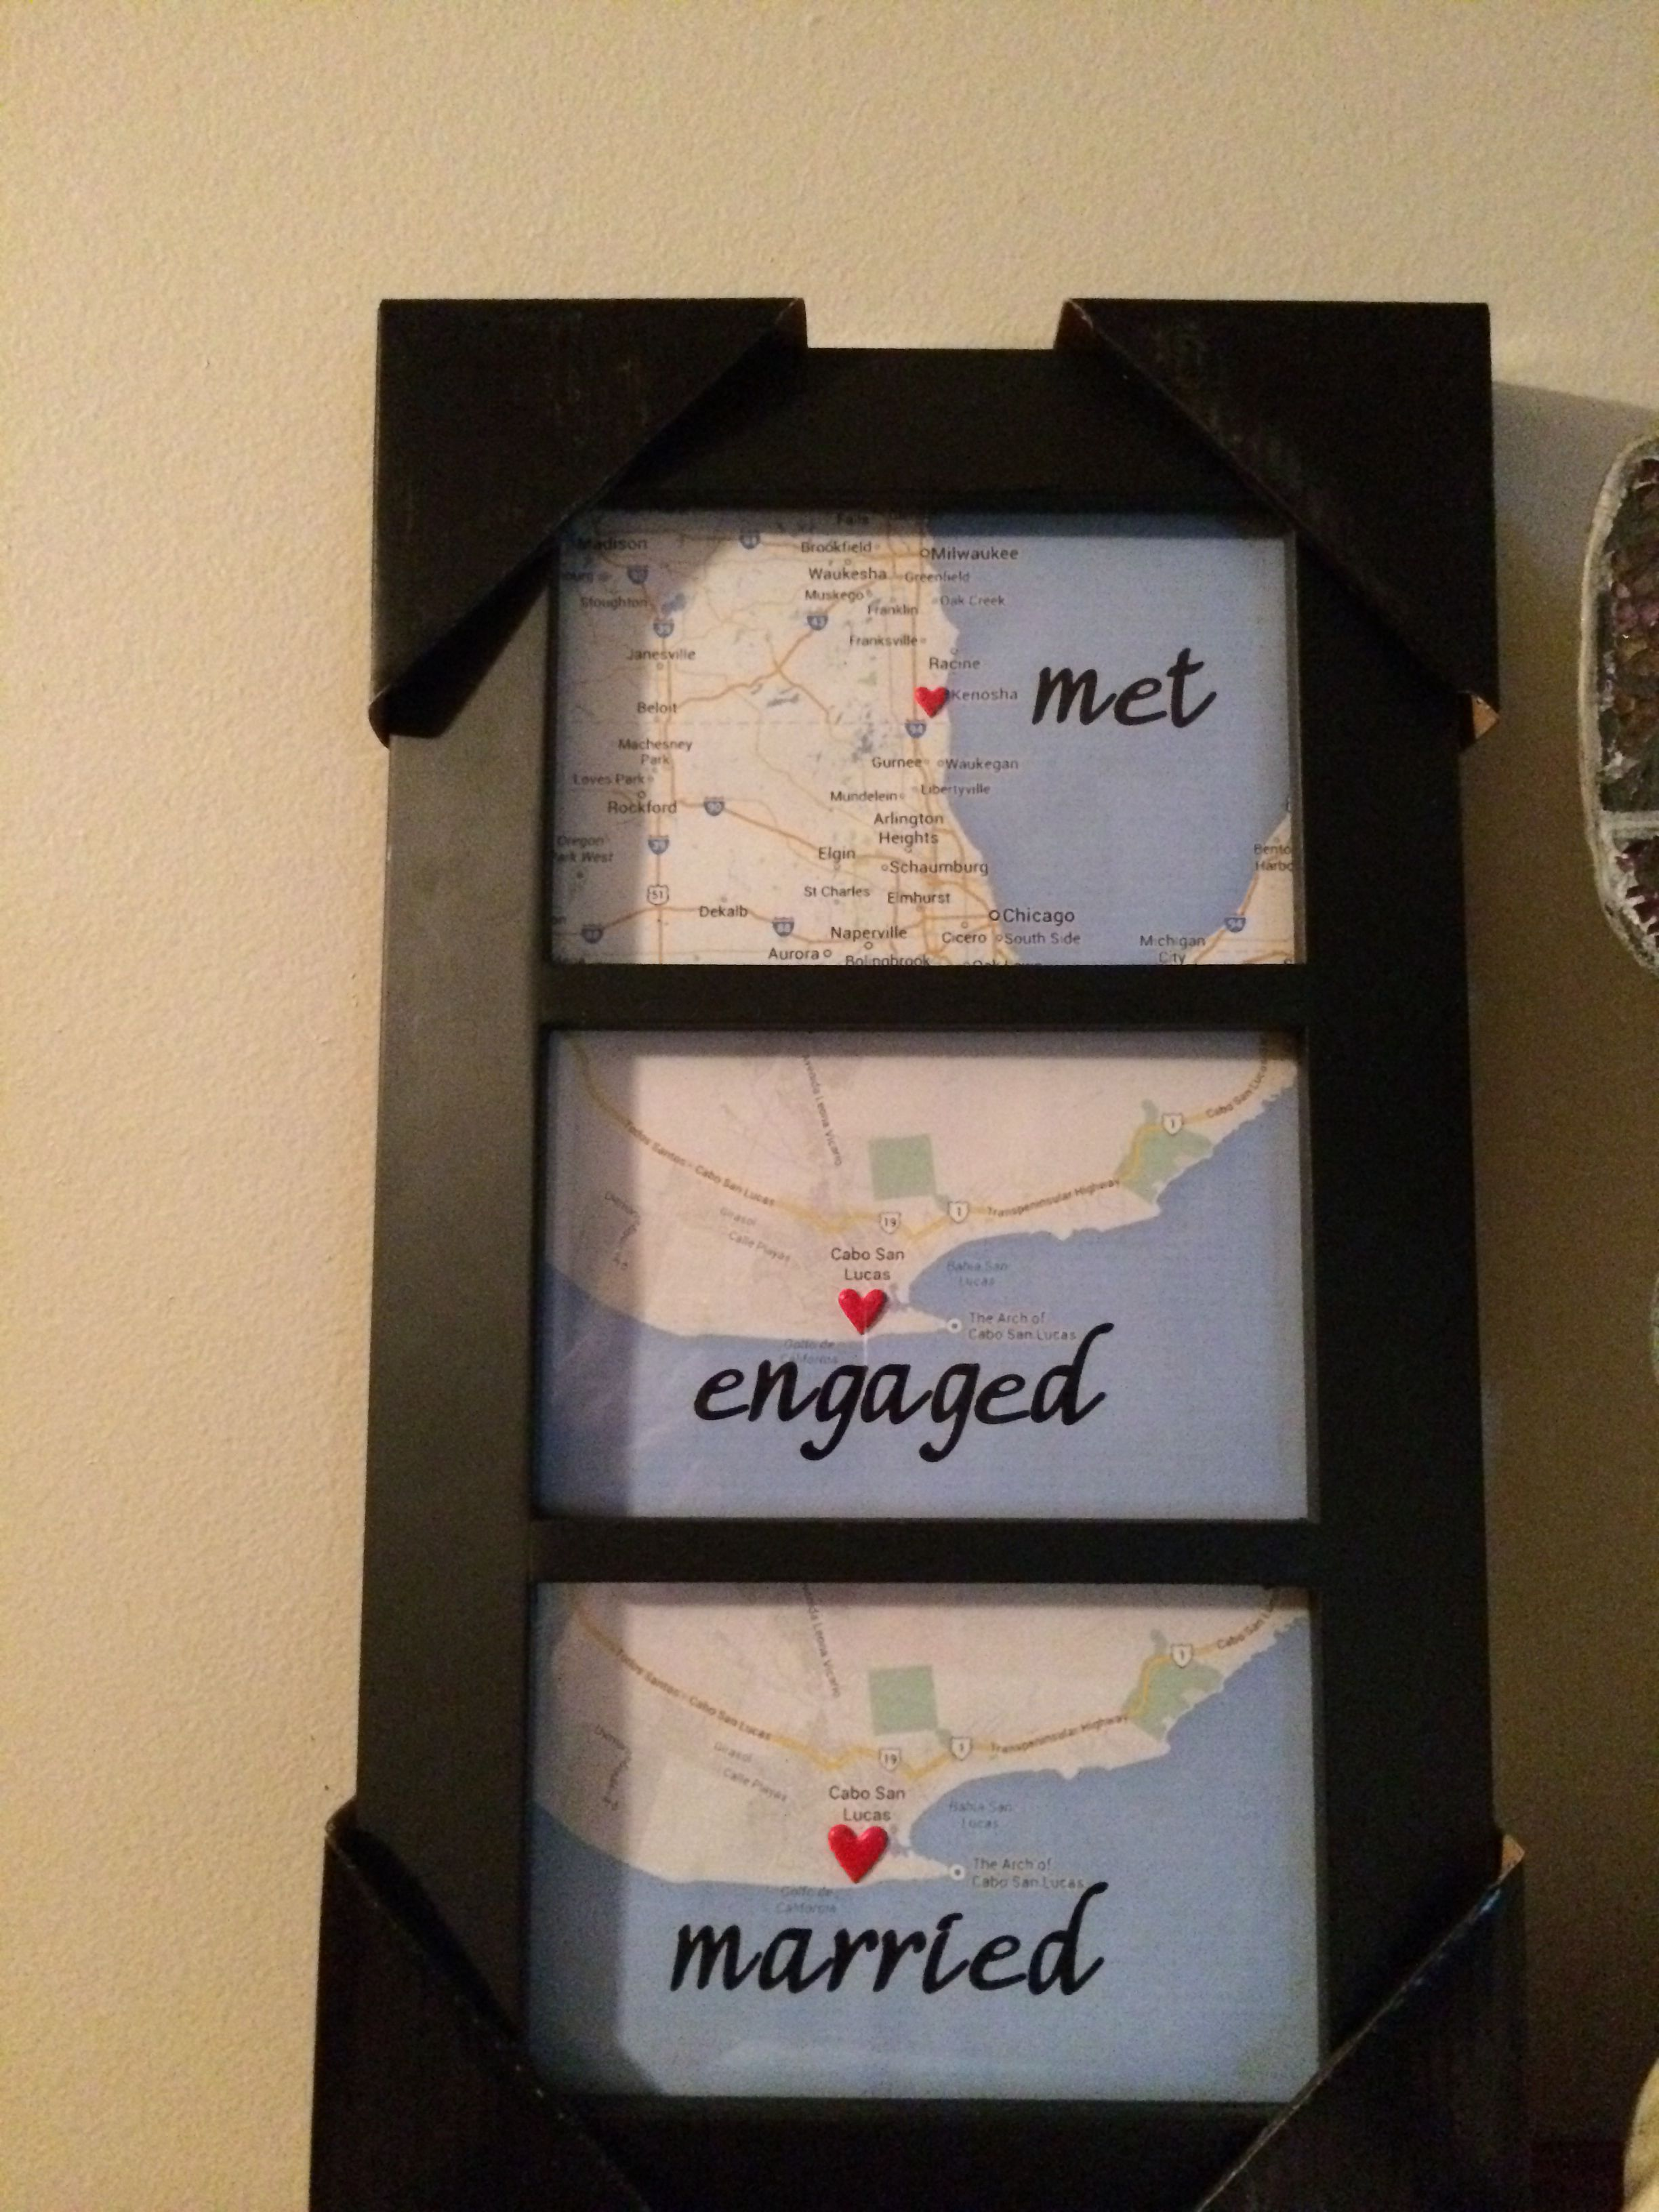 Found this idea on Pinterest, loved it! My Hubby